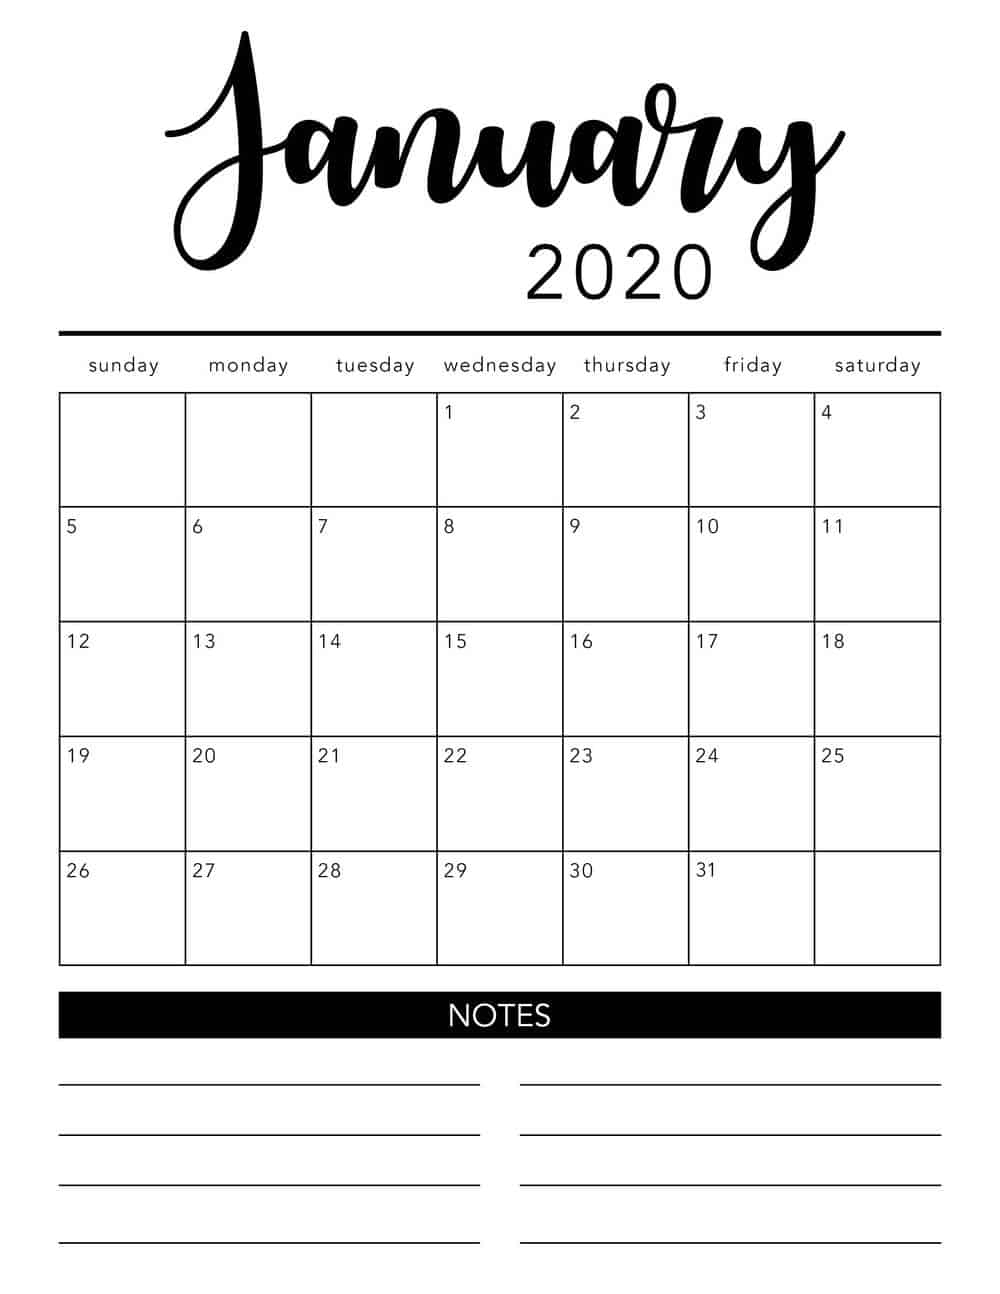 2020 Calendar Template 6 Months Per Page Images 842 pertaining to 6 Month Printable Calendar